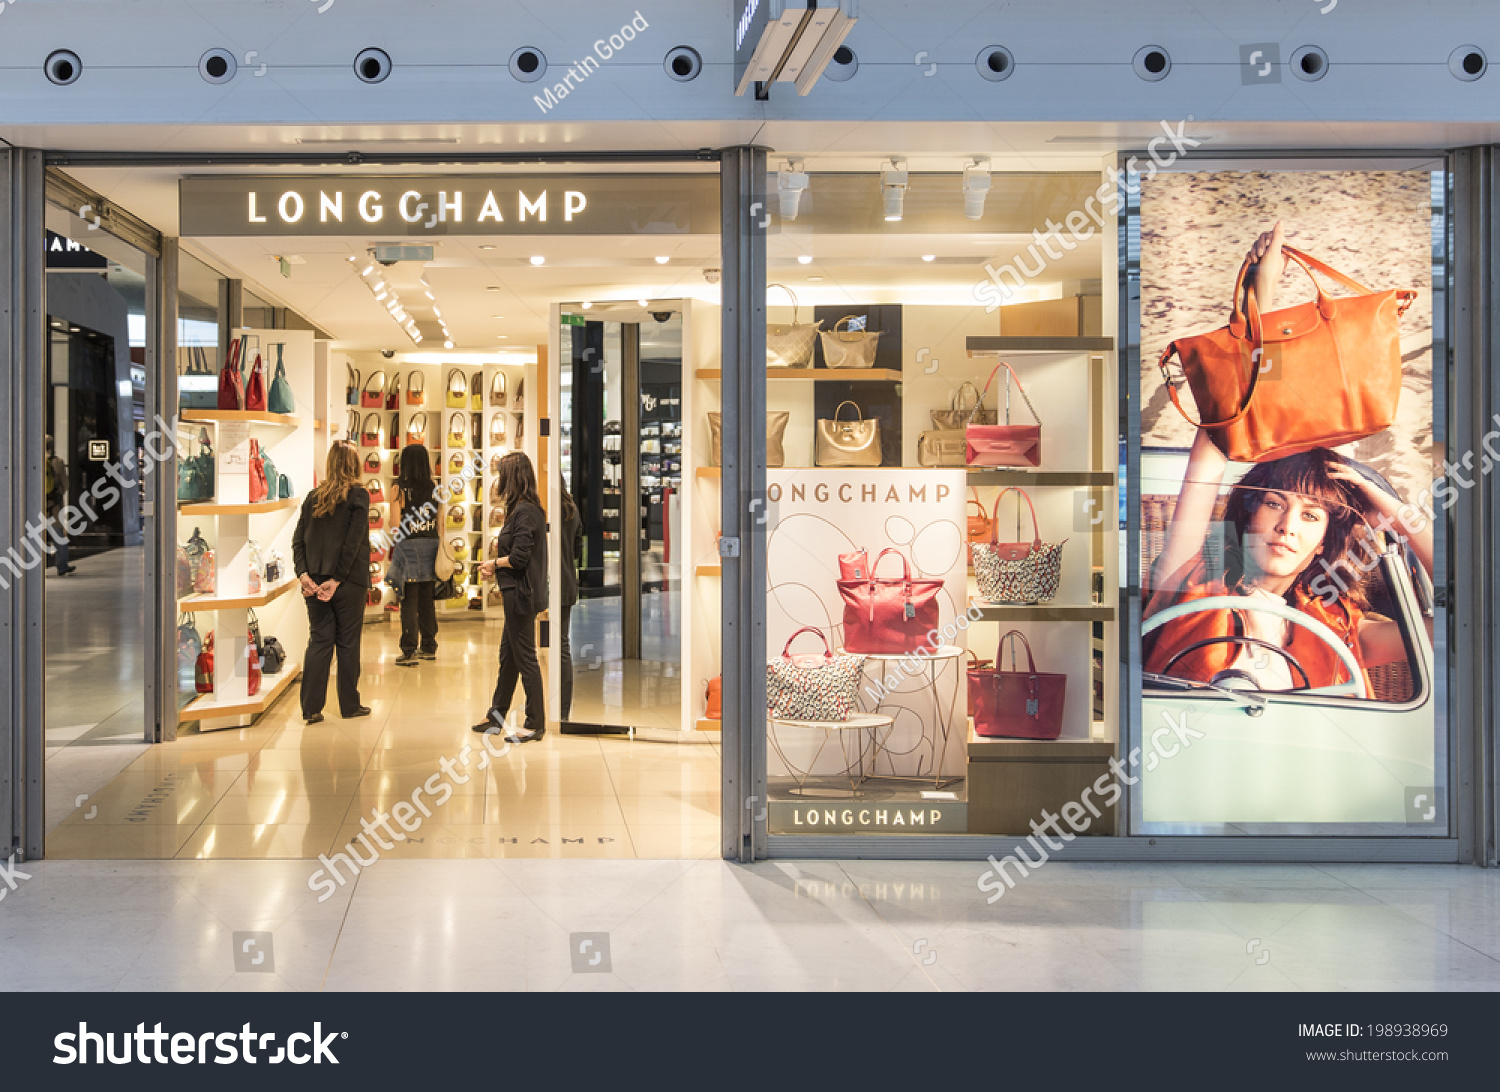 paris may 27 2014 a lonchamp store longchamp is distributed in 100 countries through 1 800. Black Bedroom Furniture Sets. Home Design Ideas